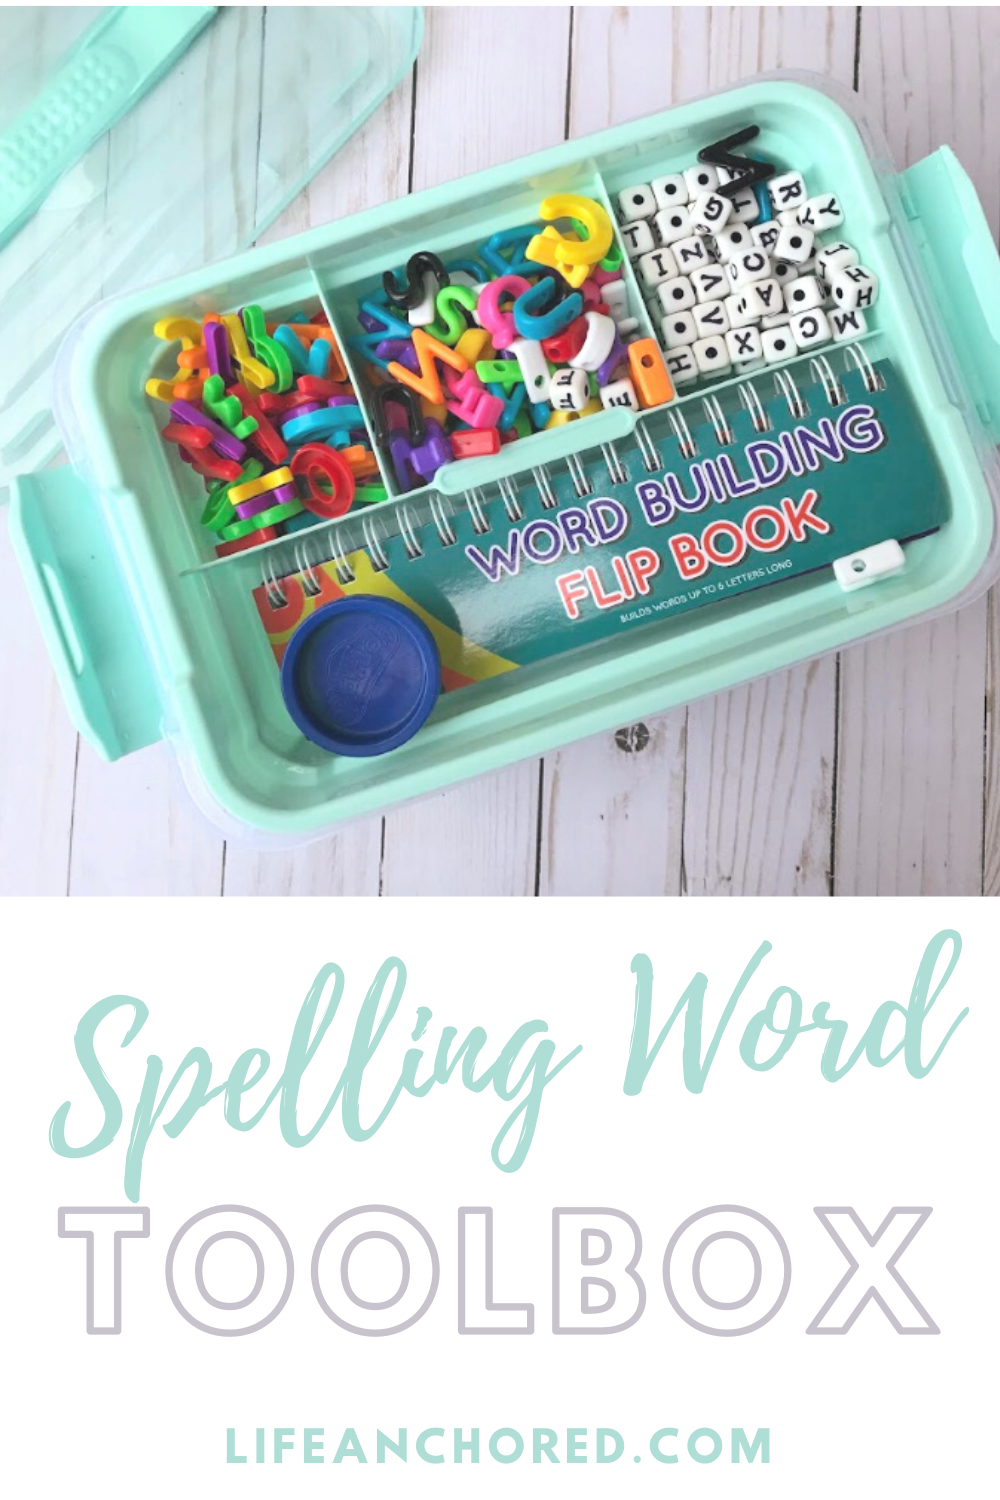 Spelling Word Toolbox // Life Anchored